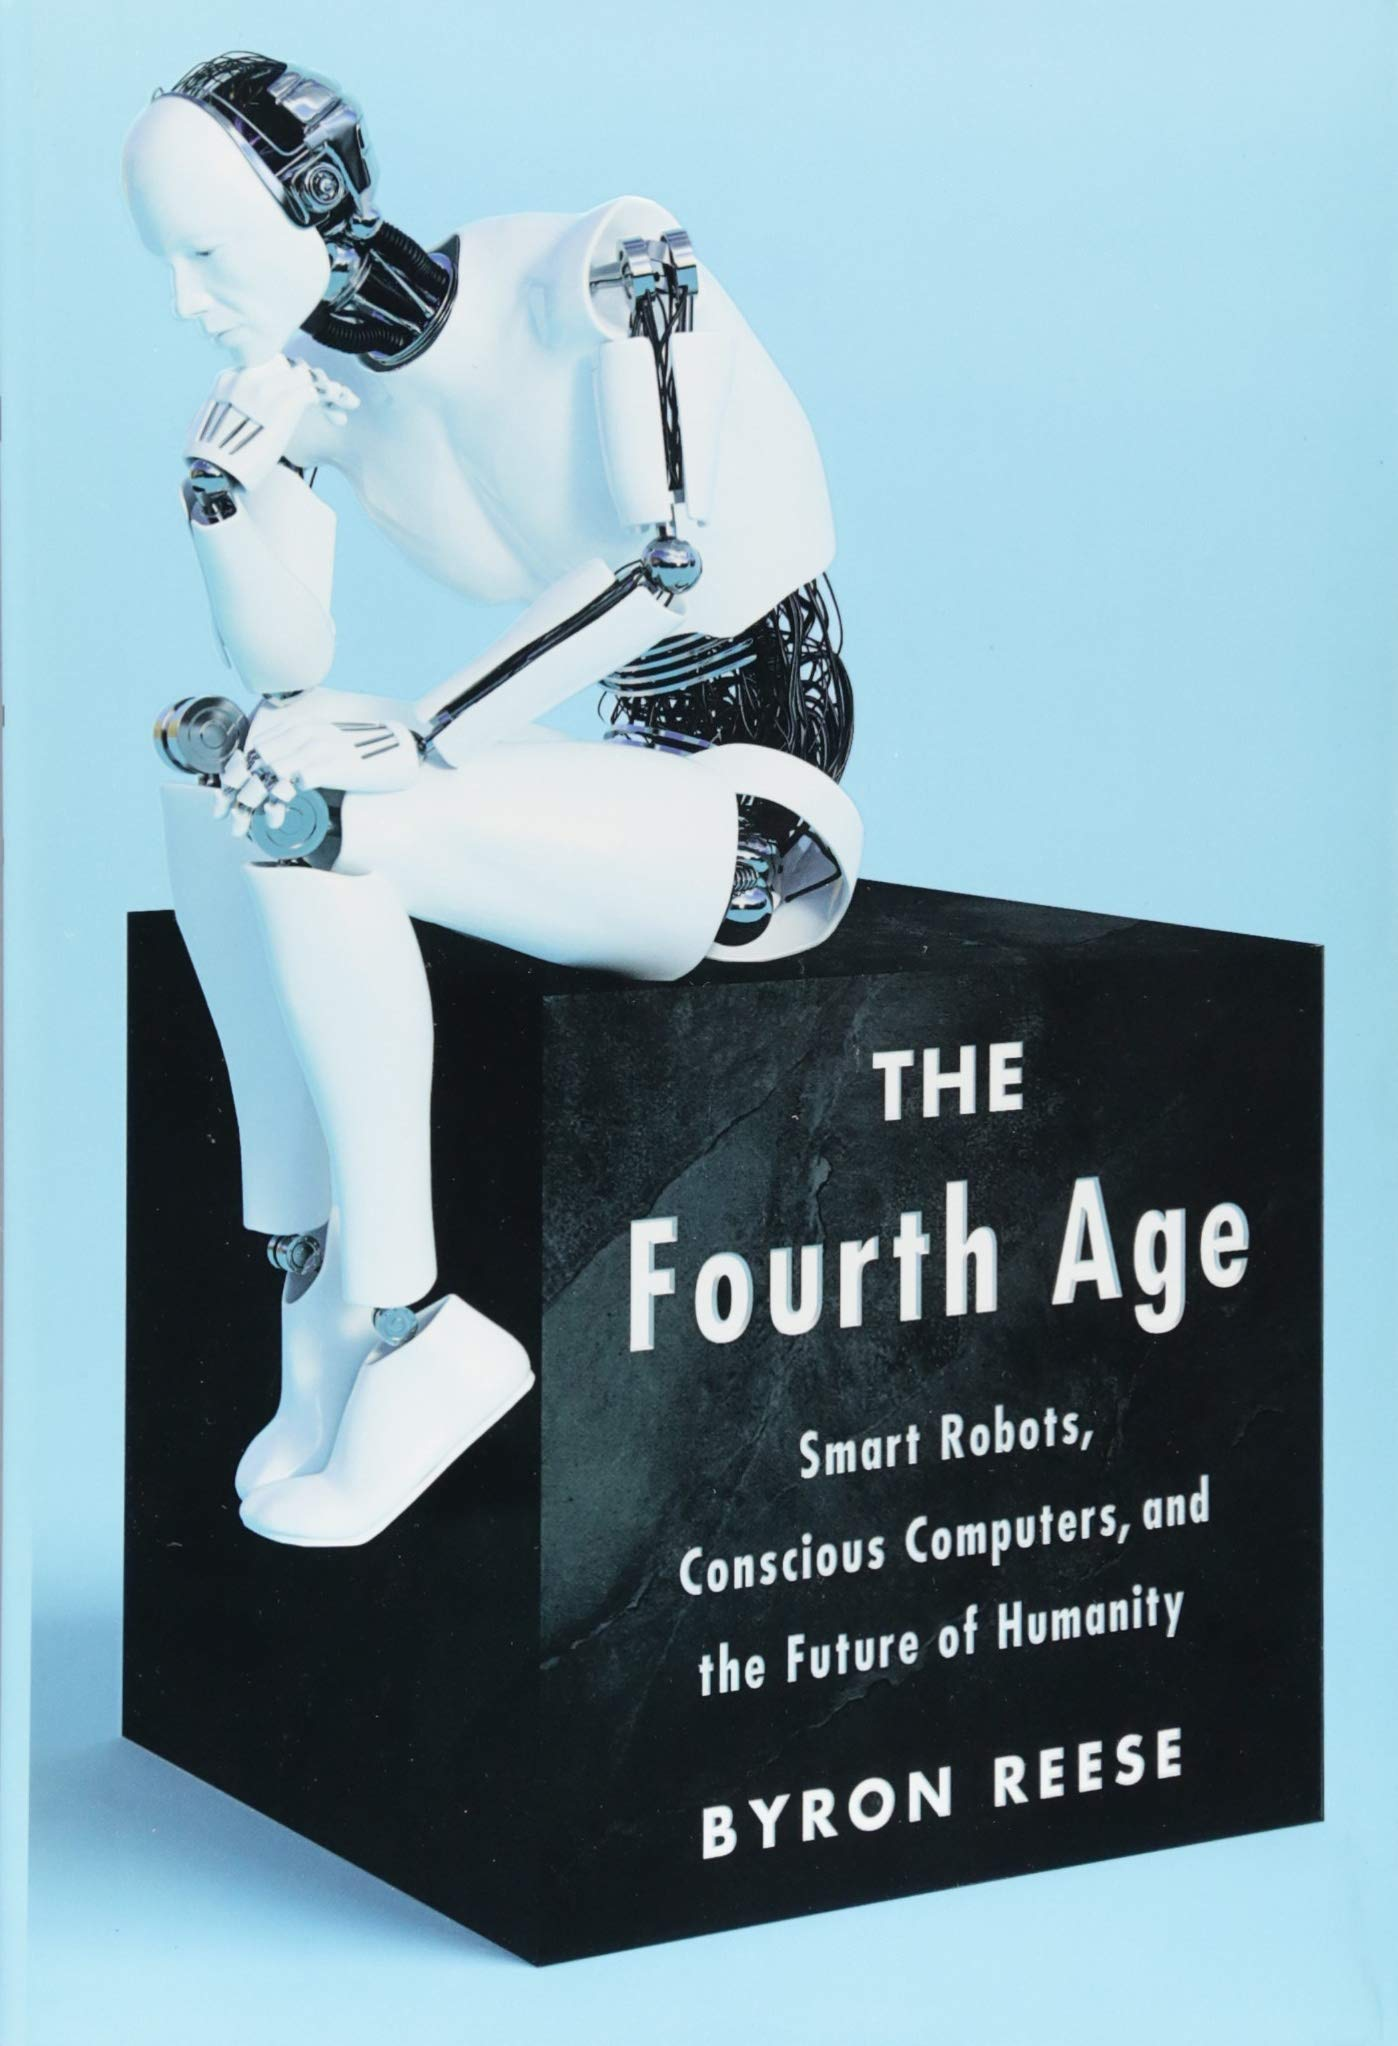 Book of the Day: The Fourth Age: Smart Robots, Conscious Computers, and the Future of Humanity